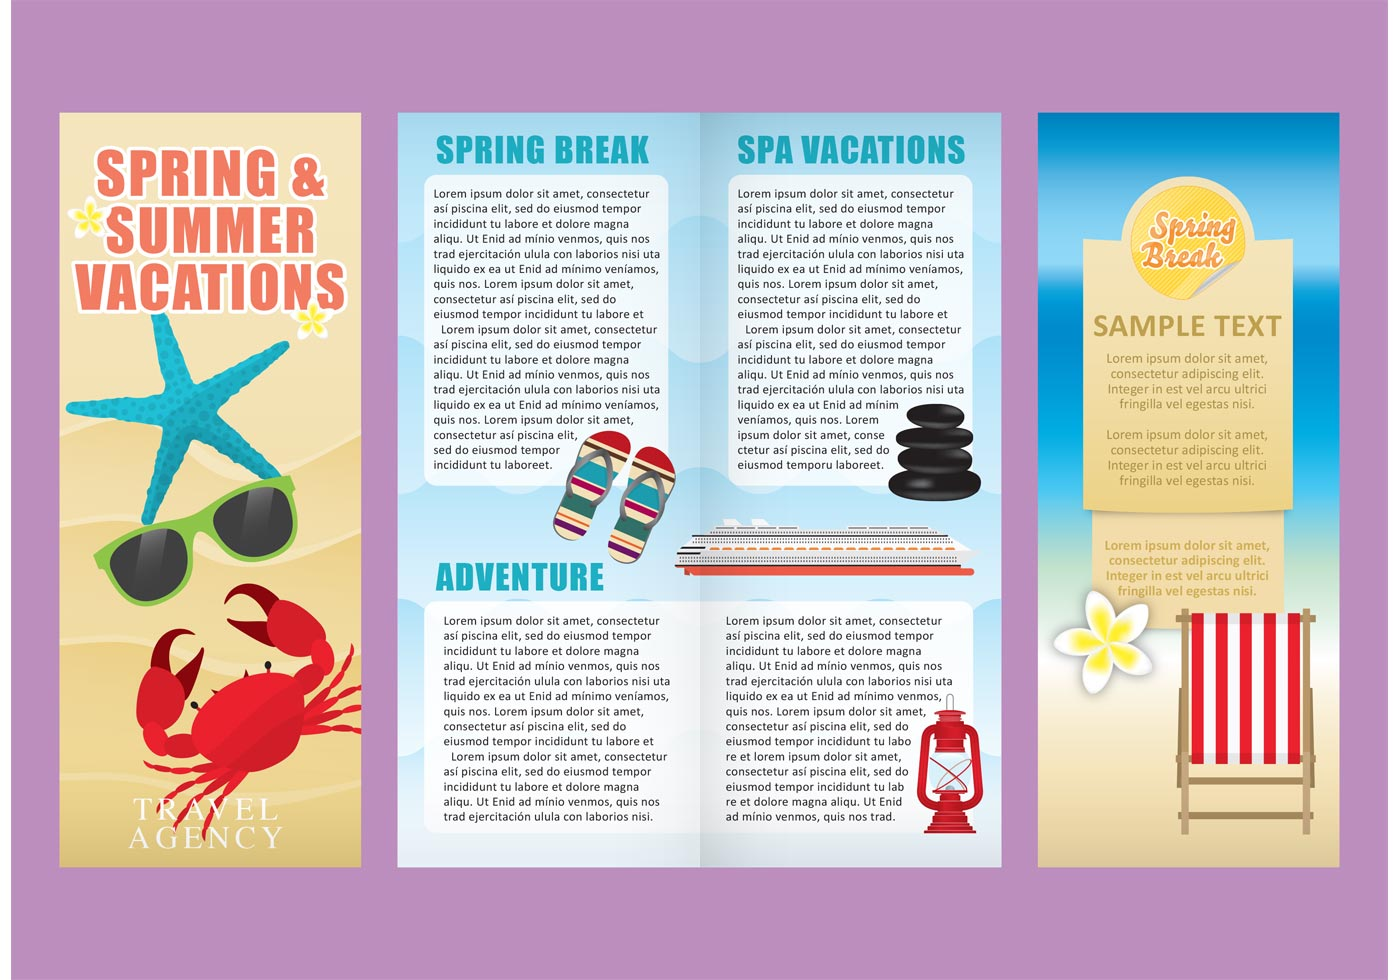 Vacations brochure template vectors download free vector for Vacation brochure templates